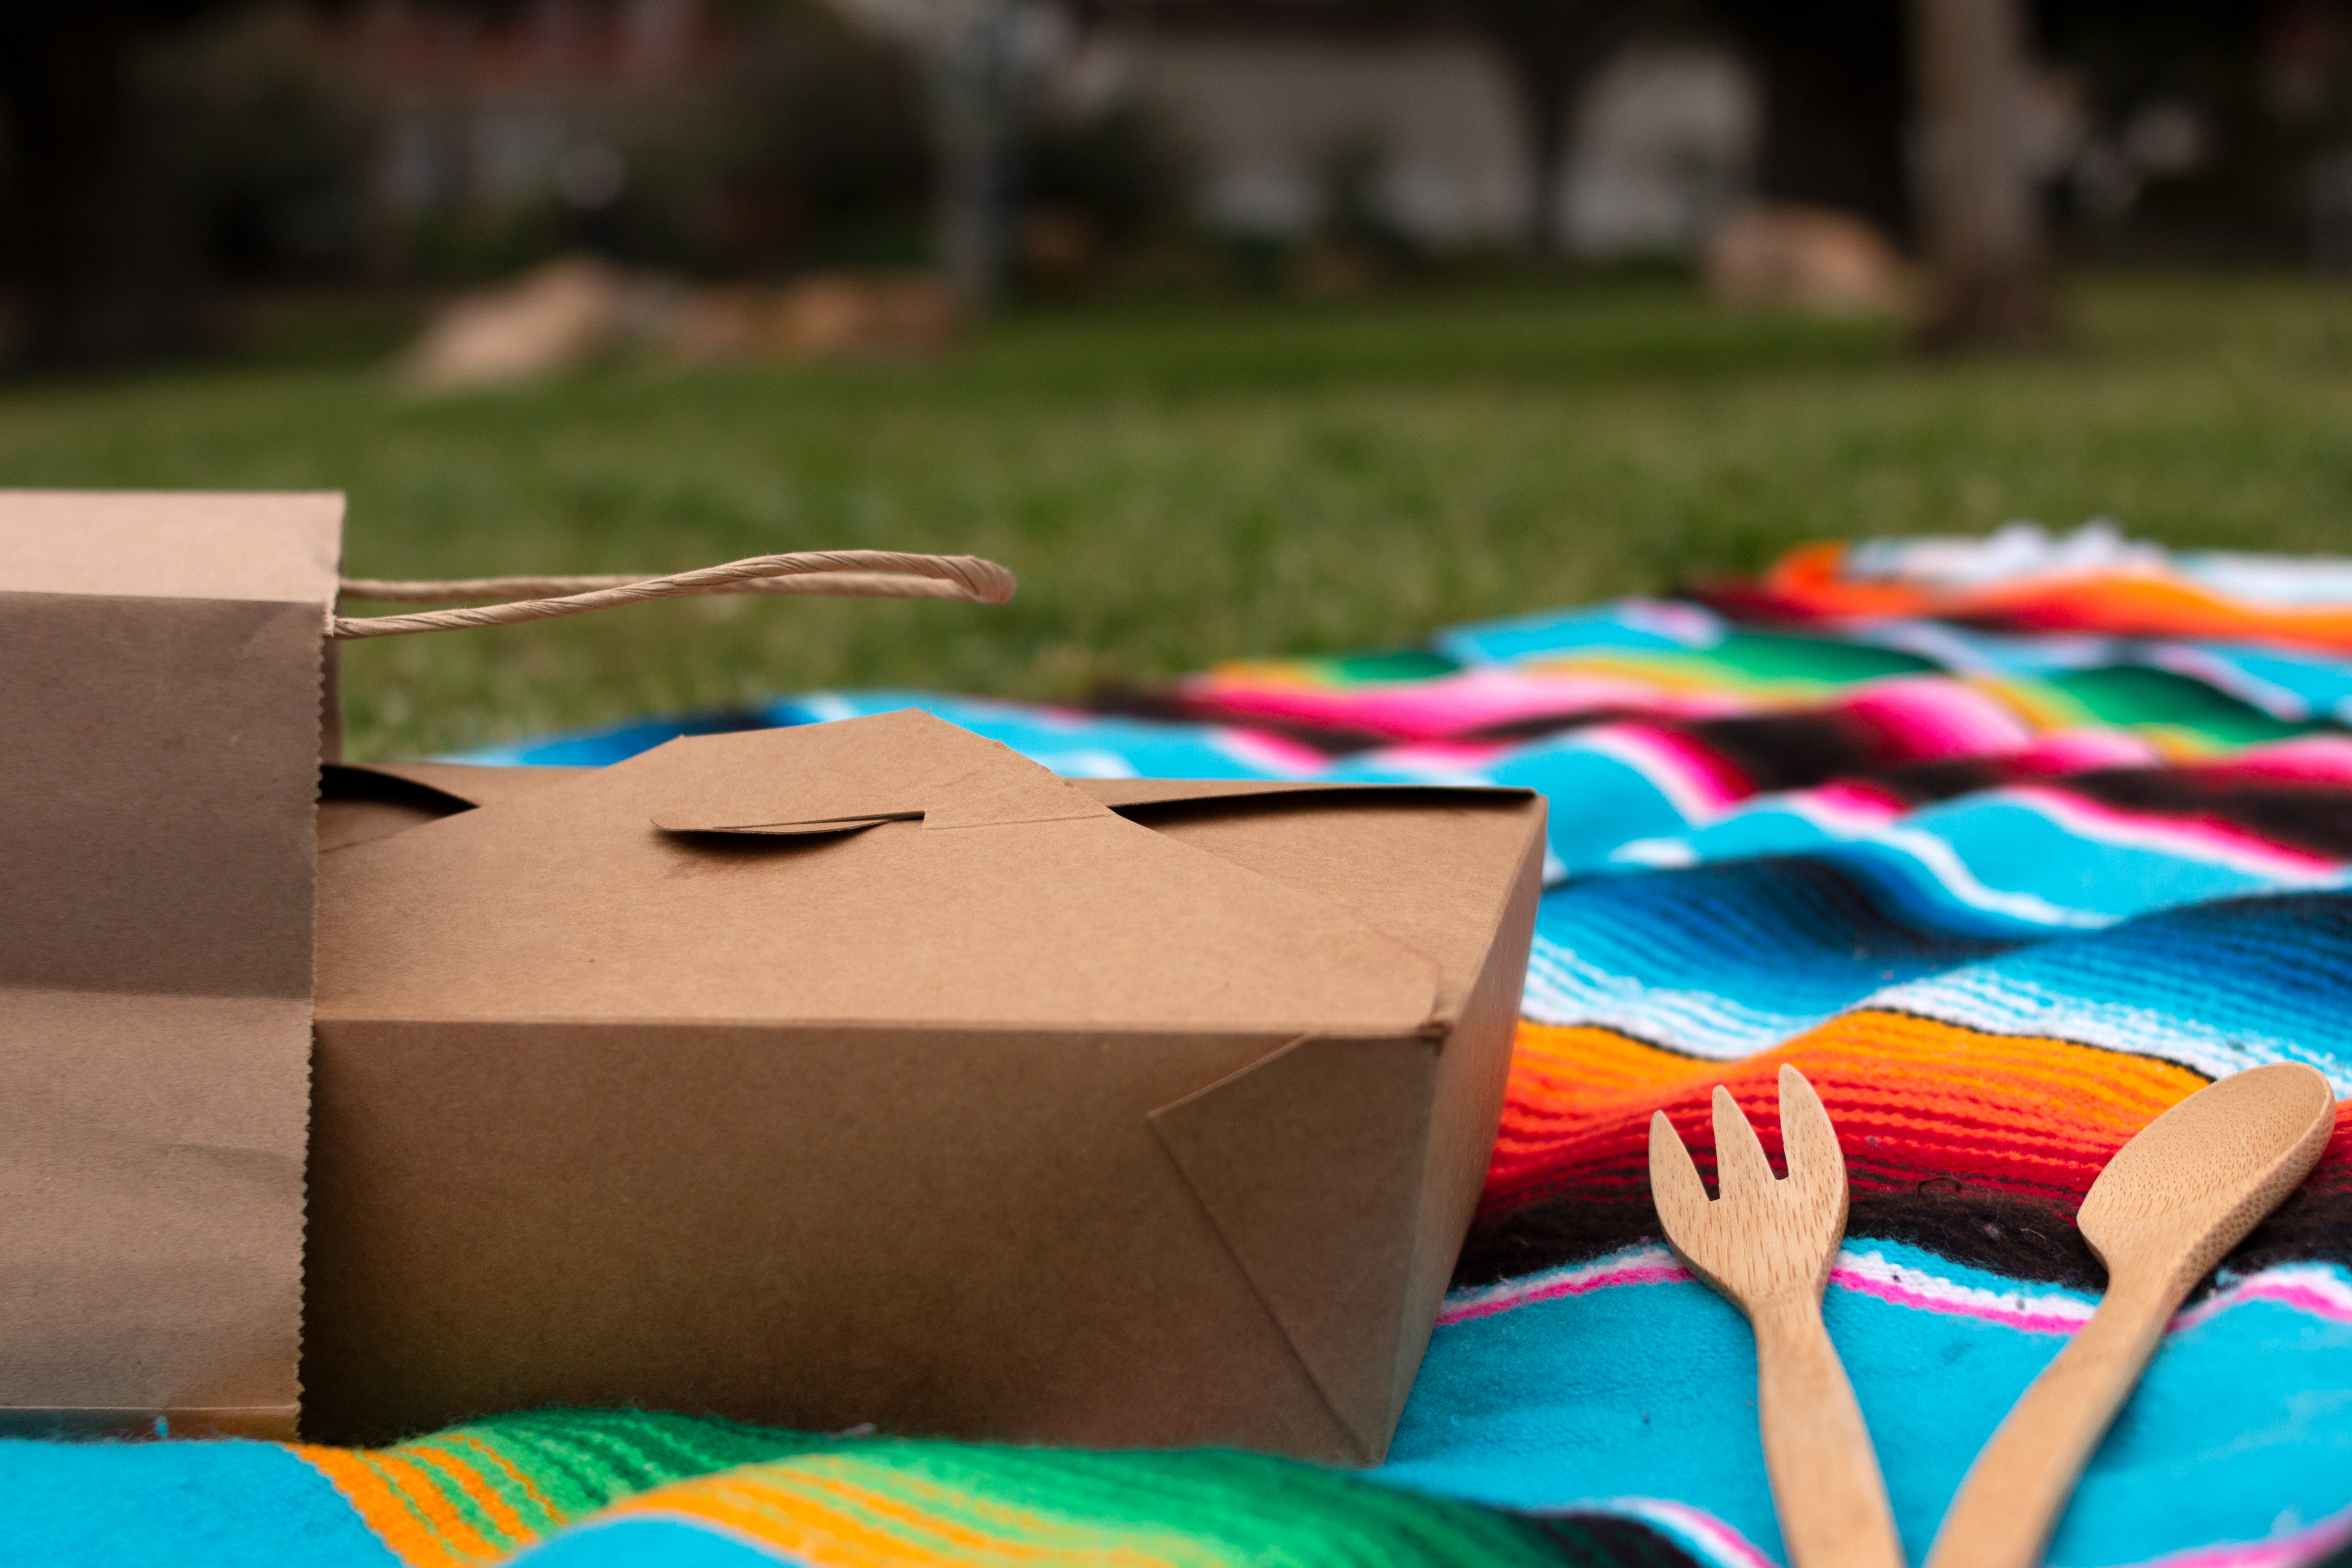 A cardboard takeout box, bag, and utensils sit on a rainbow, woven blanket in a grassy park.